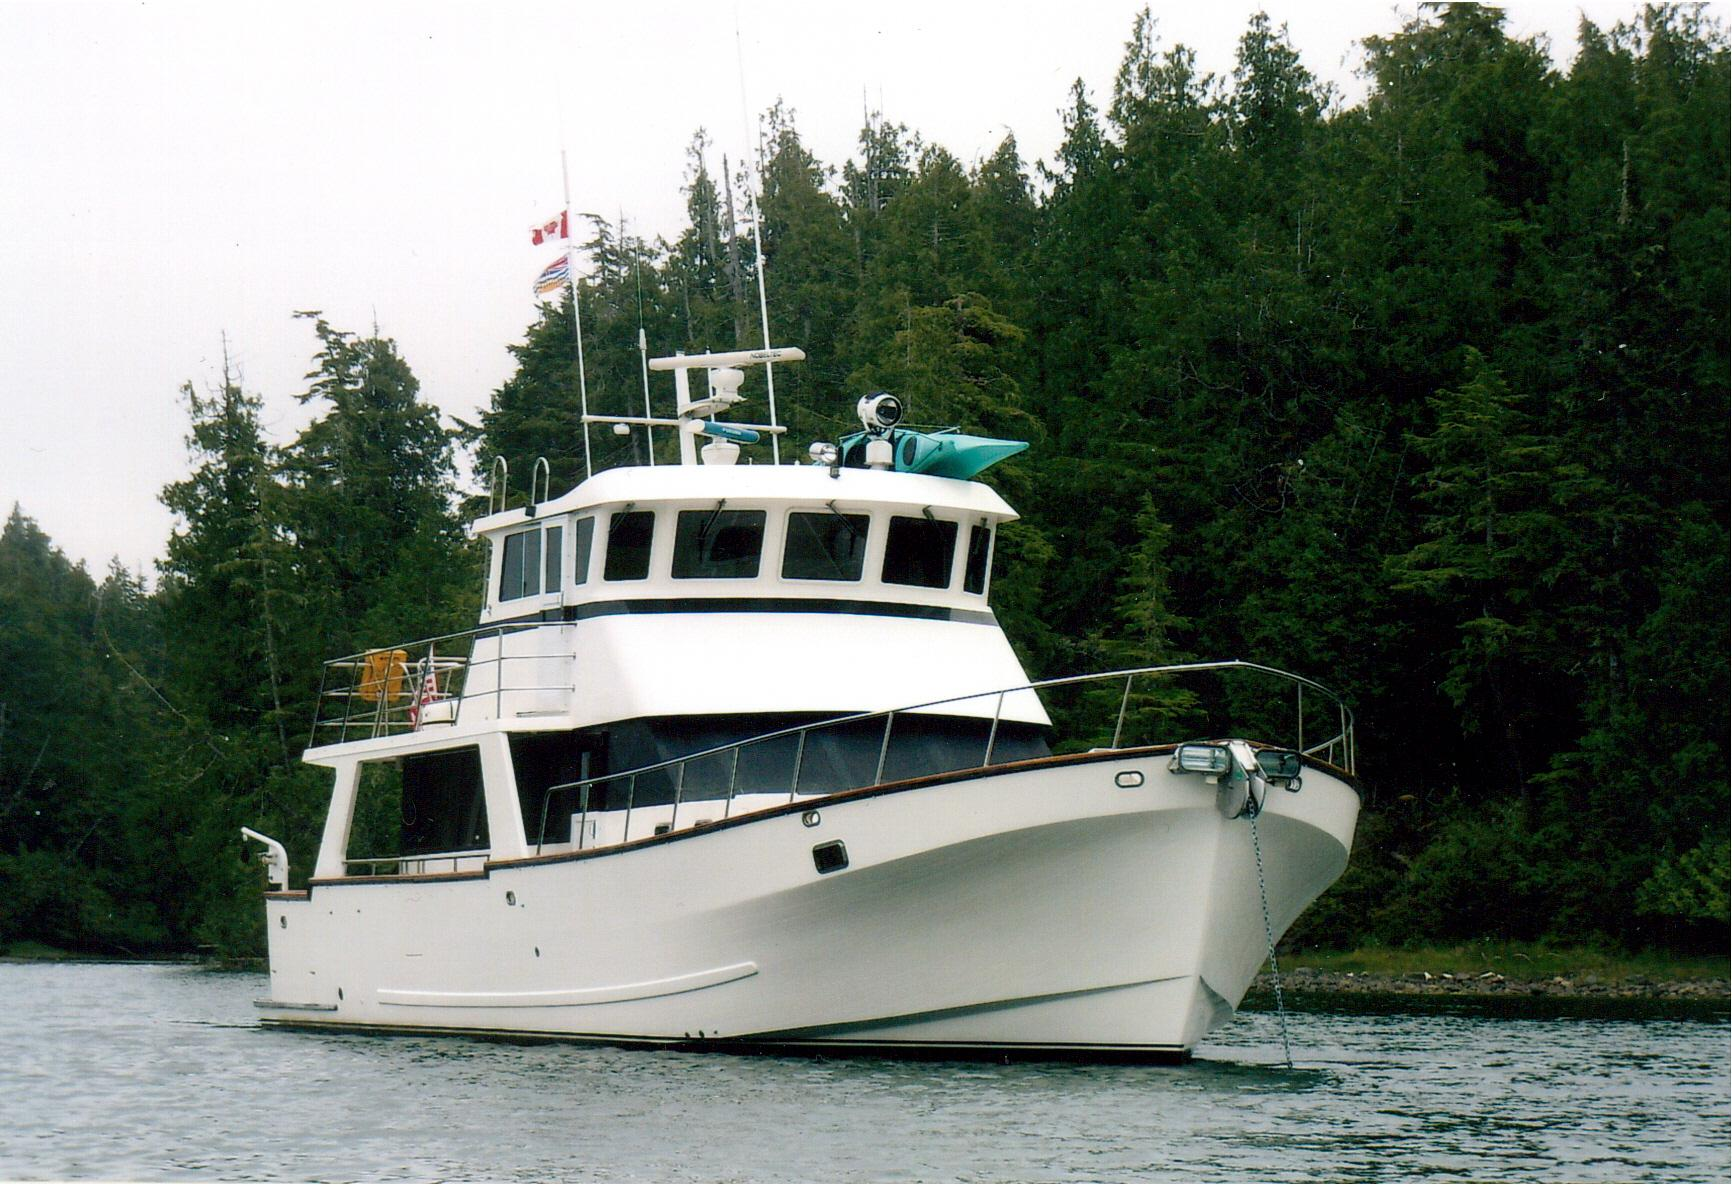 Hoquiam (WA) United States  city pictures gallery : 1994 Little Hoquiam Raised Pilothouse Power Boat For Sale www ...